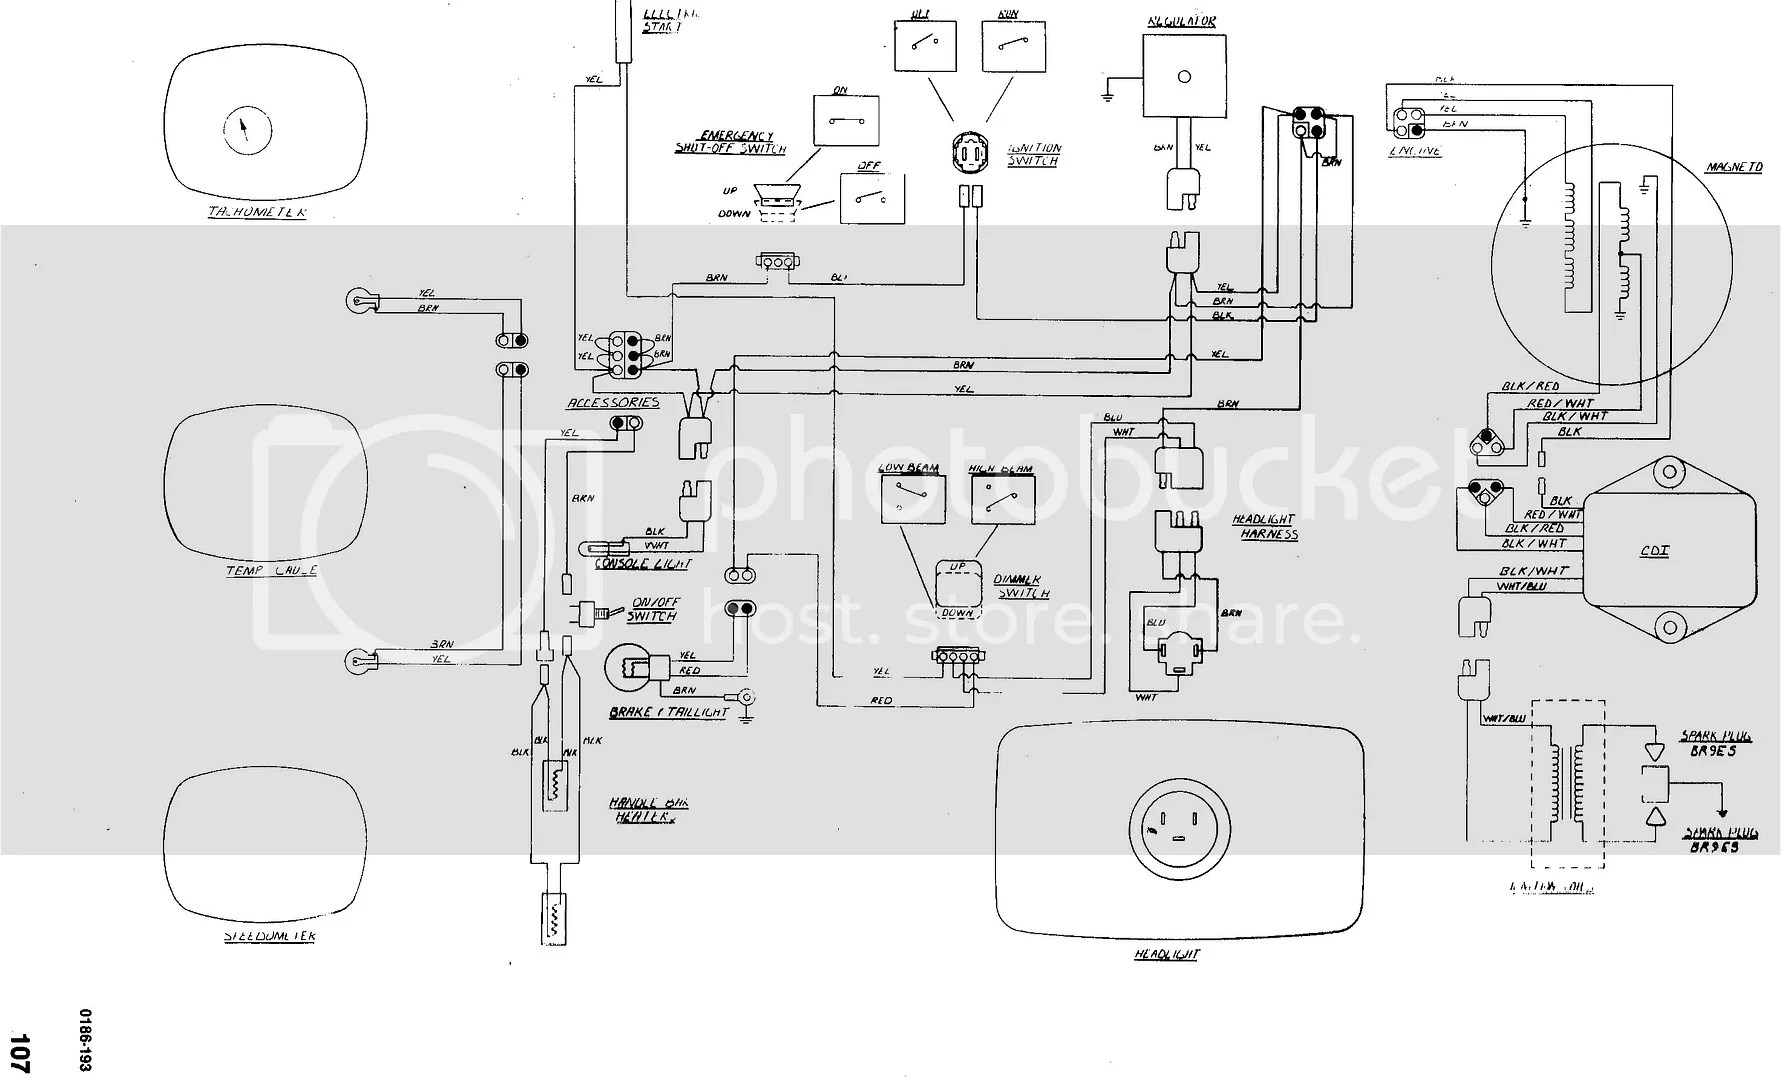 hight resolution of hand warmer wiring diagram arctic cat snowmobile wiring diagramarctic cat cougar wiring schematic wiring diagram img